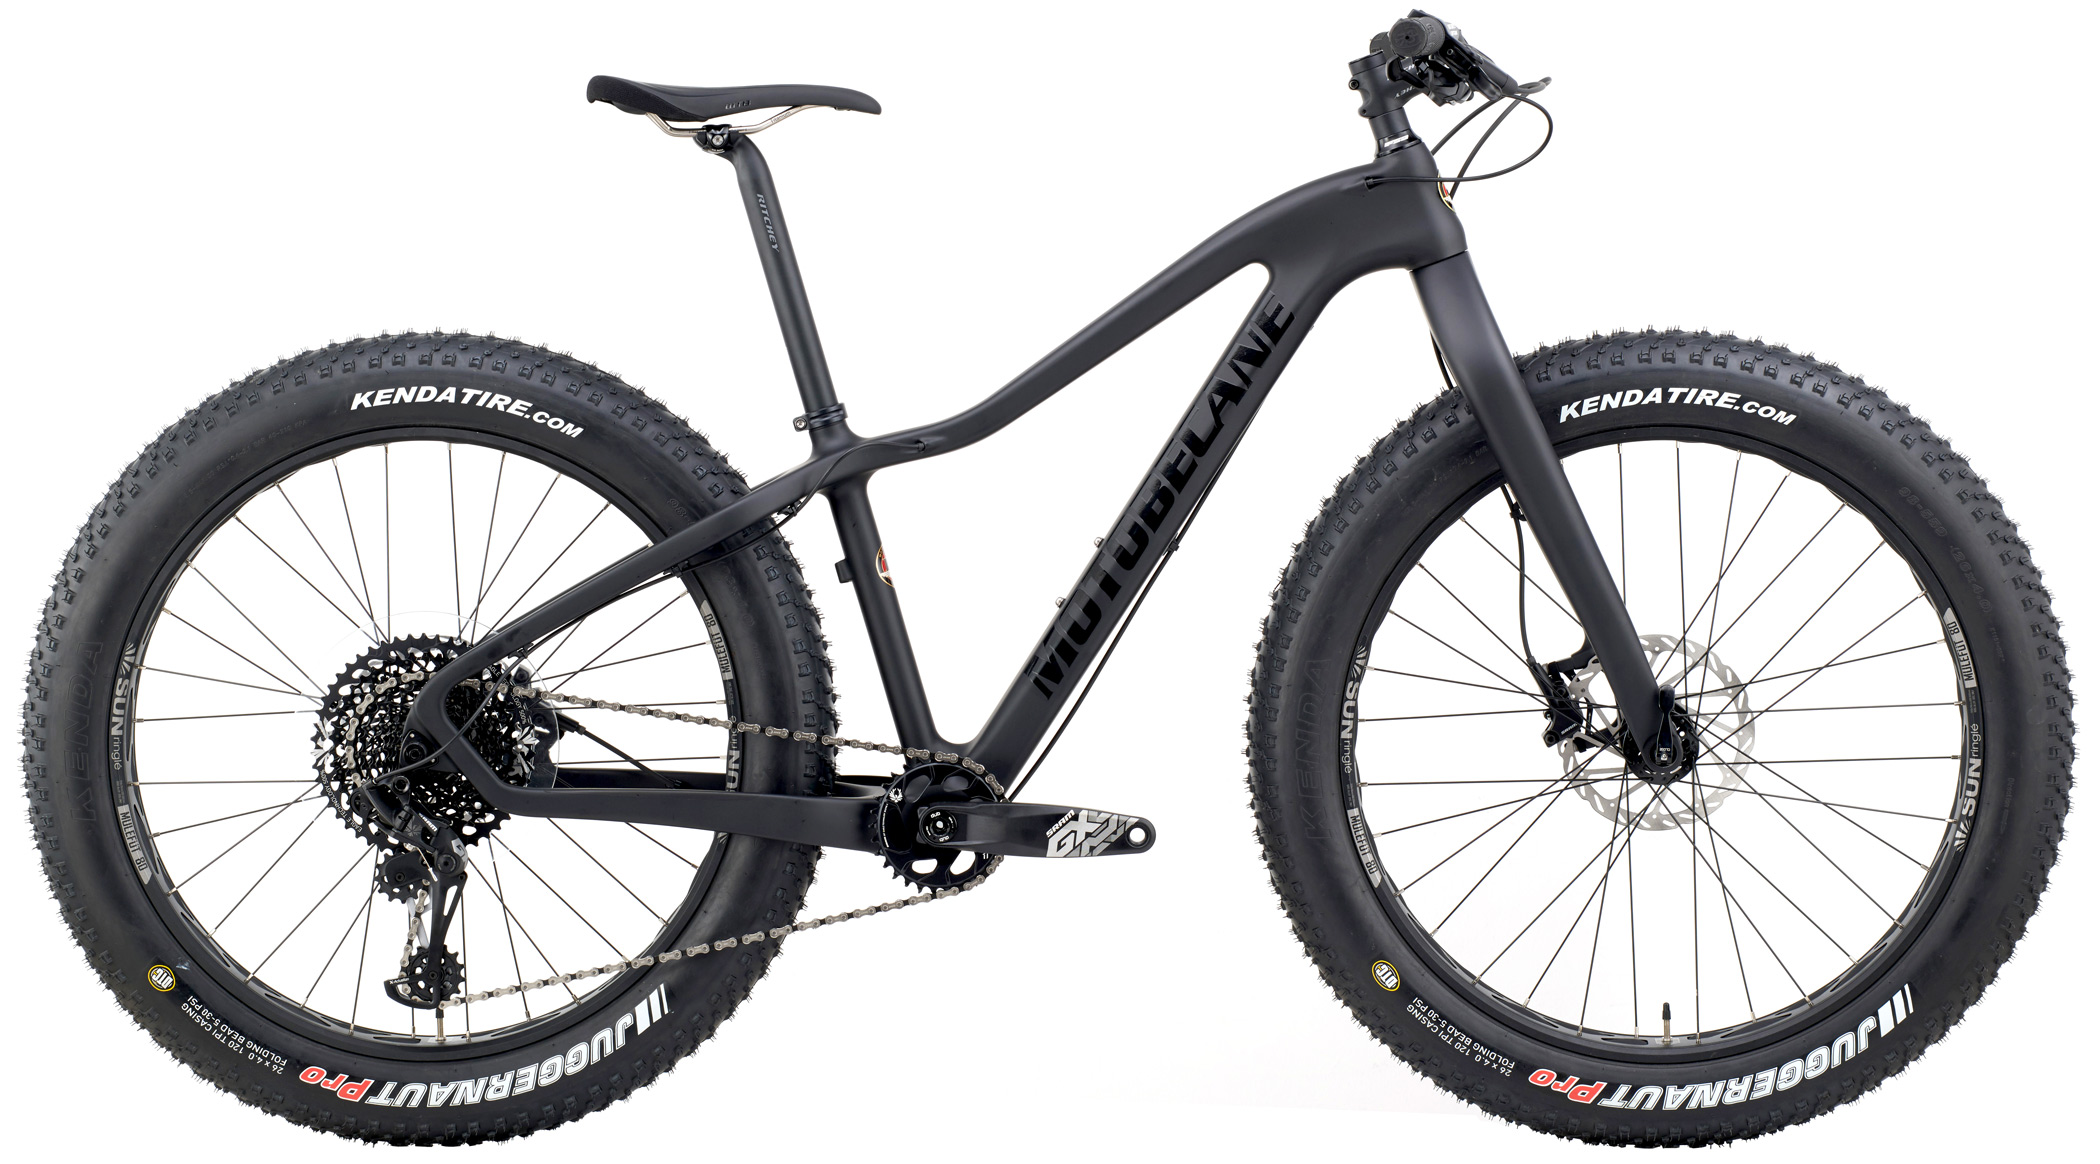 Bikes Motobecane Night Train CF SL EAGLE 1X12 Carbon Fat Bike Image